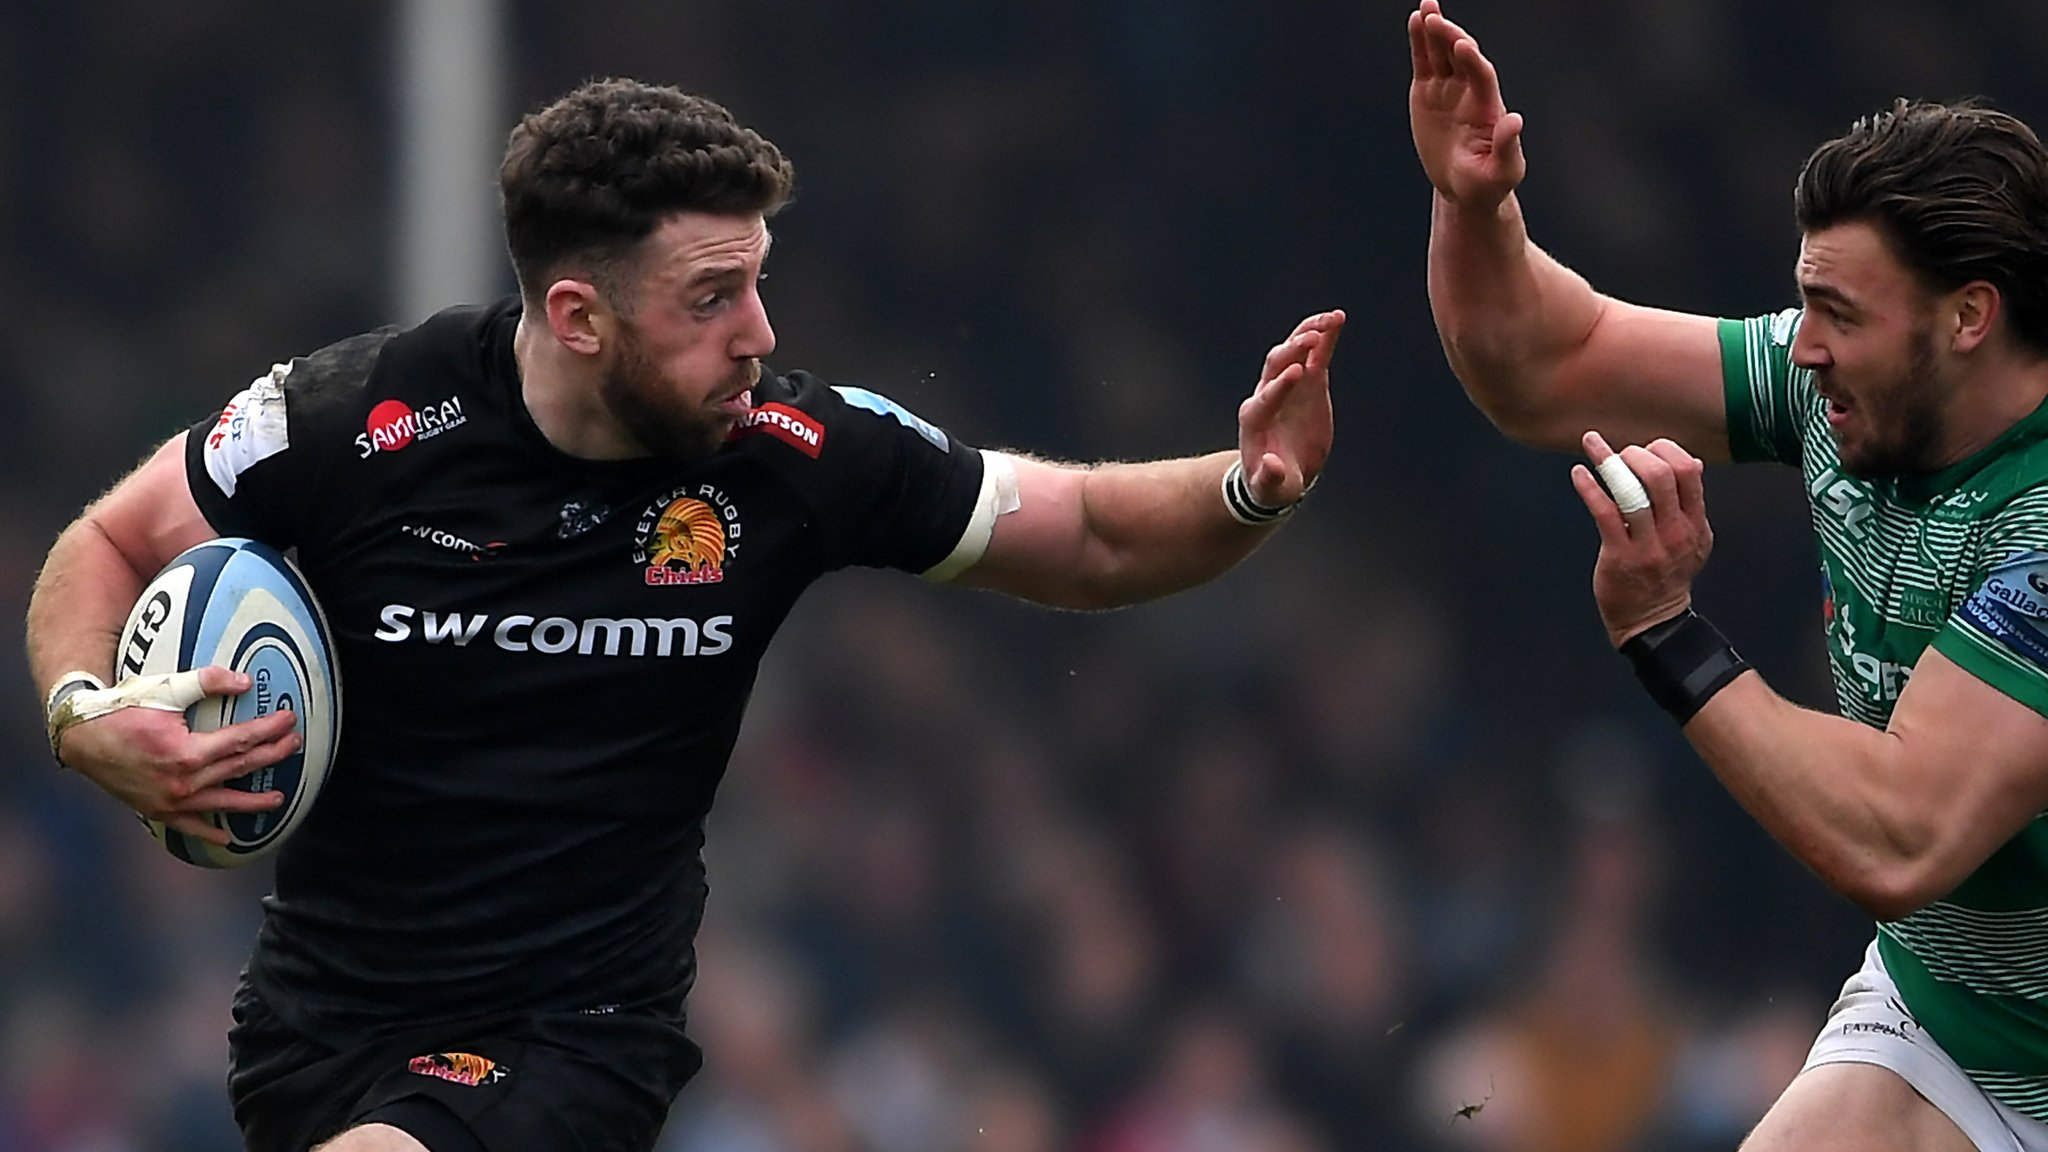 Exeter beat struggling Newcastle to return to top of Premiership